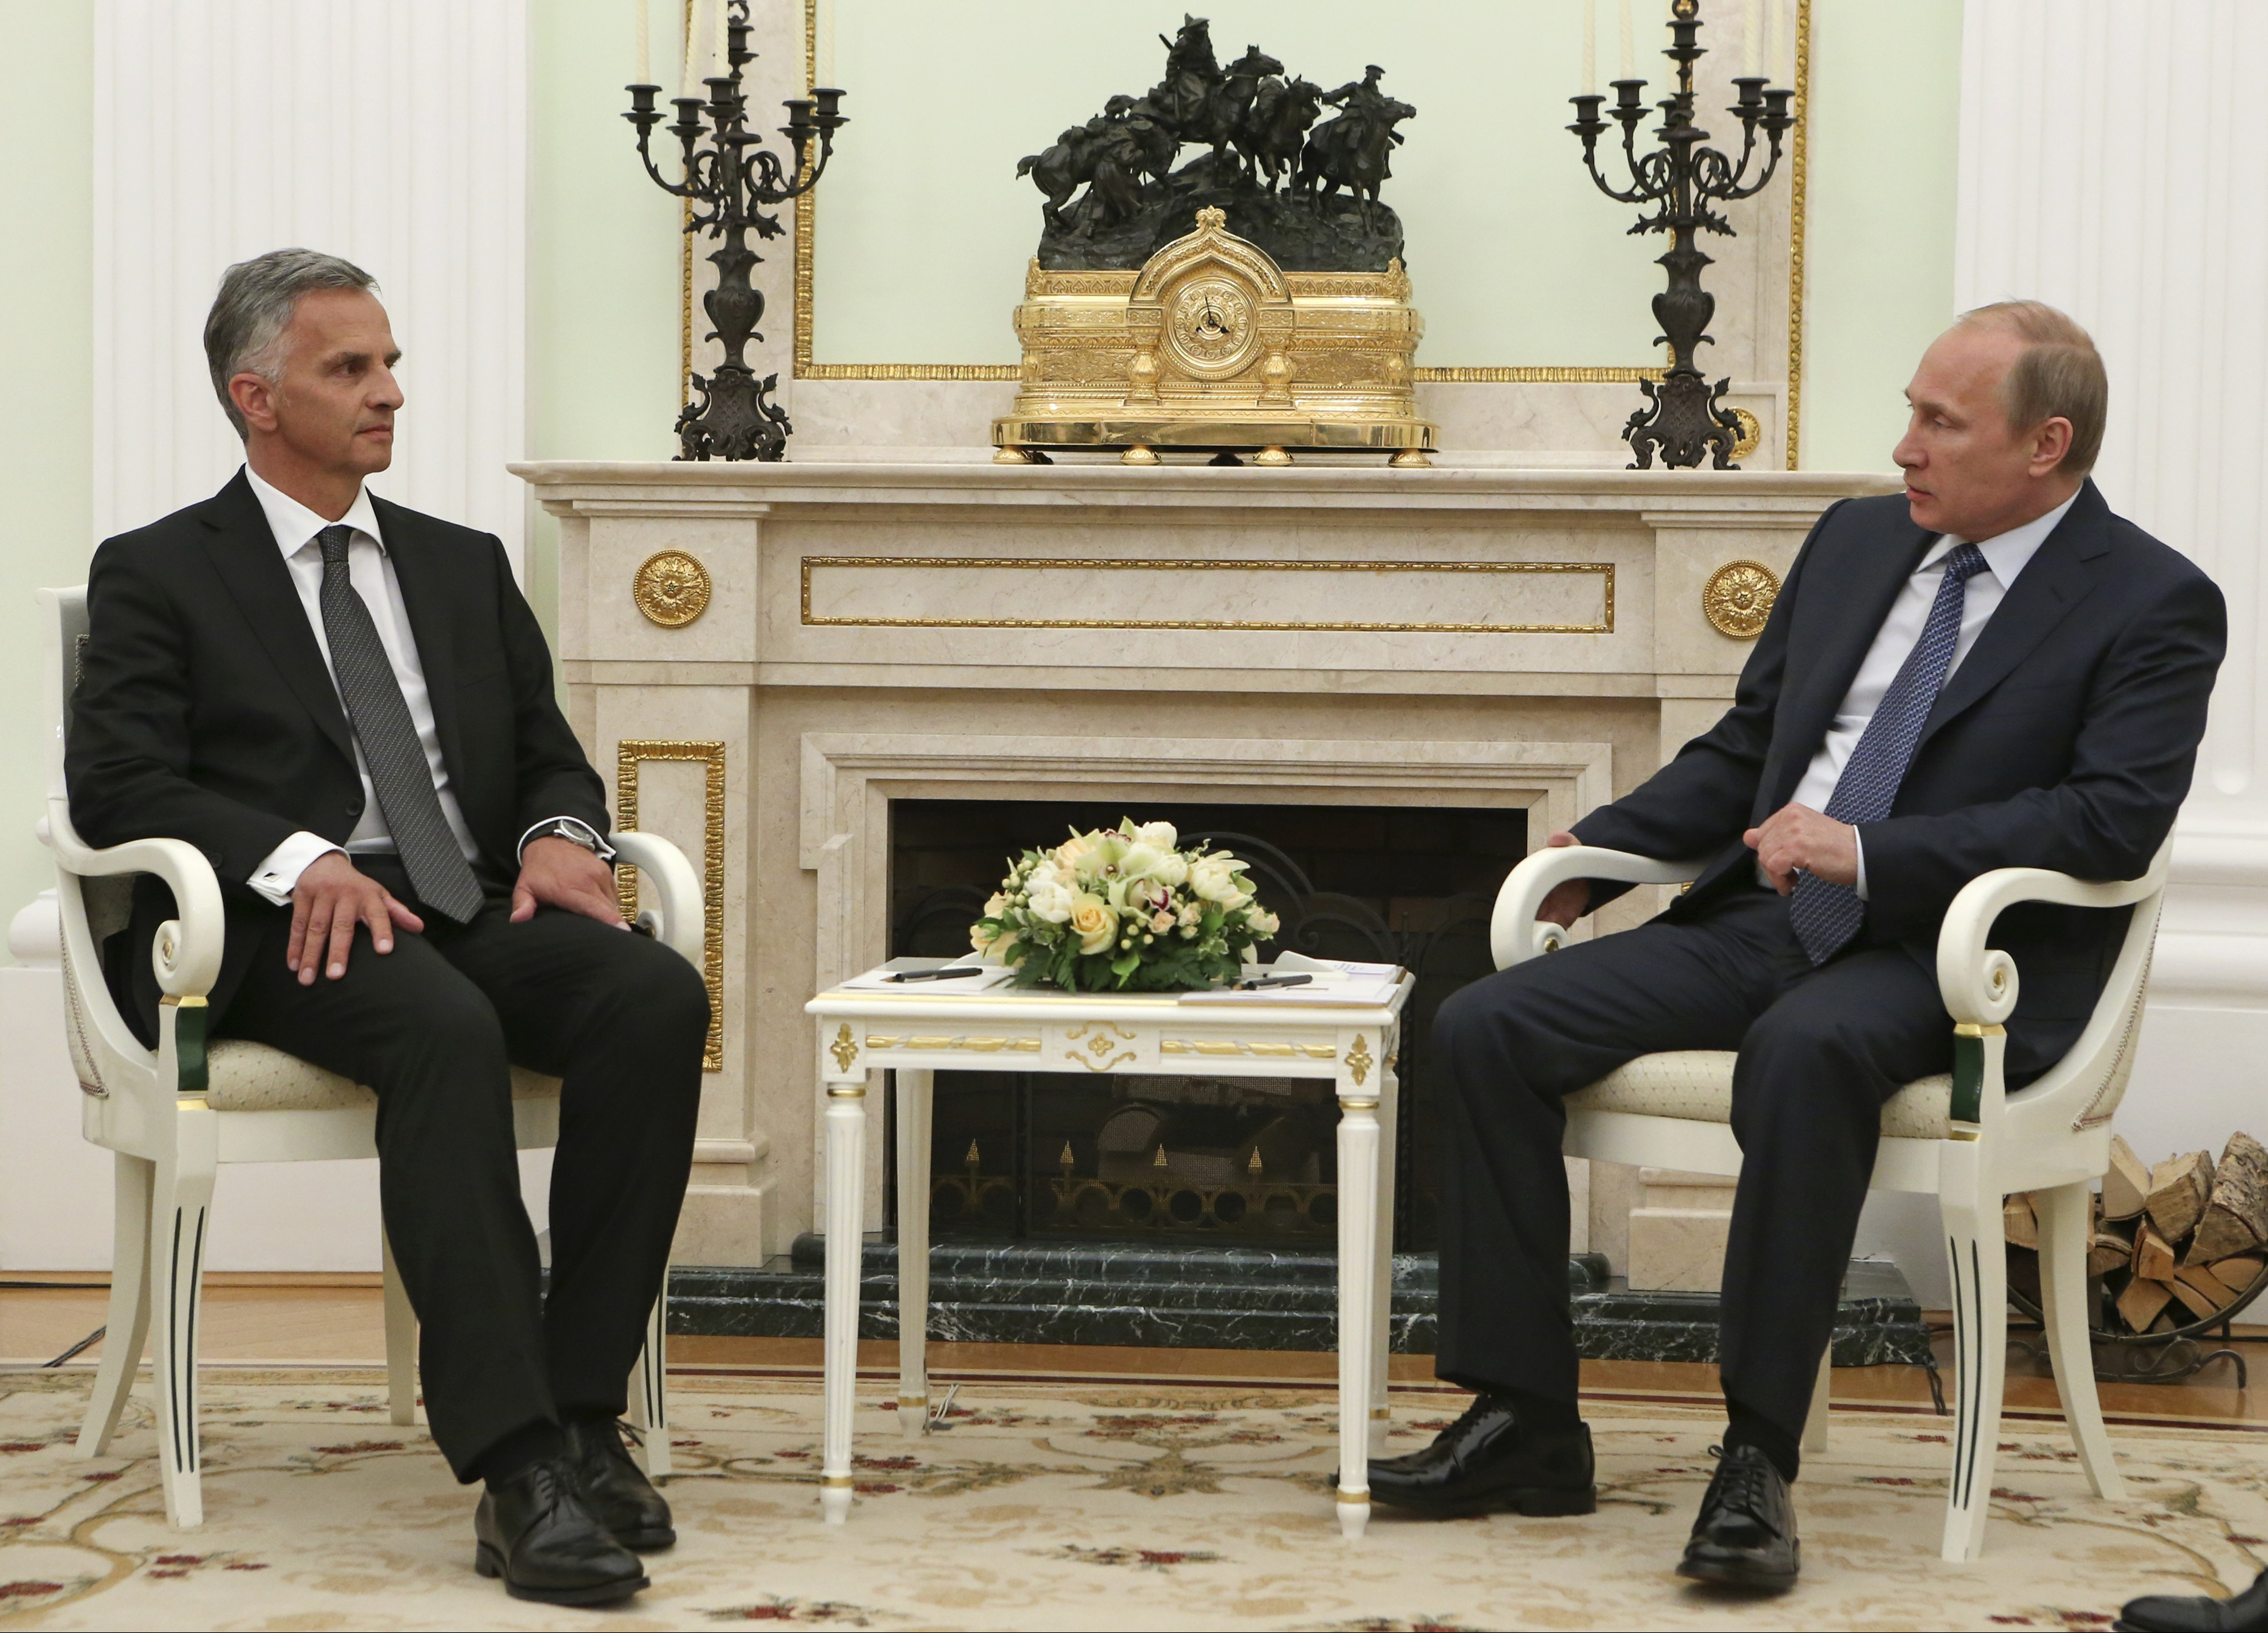 Russian President Vladimir Putin, right, and Swiss Federal President Didier Burkhalter speak at their a meeting in the Kremlin in Moscow, Wednesday, May 7, 2014.